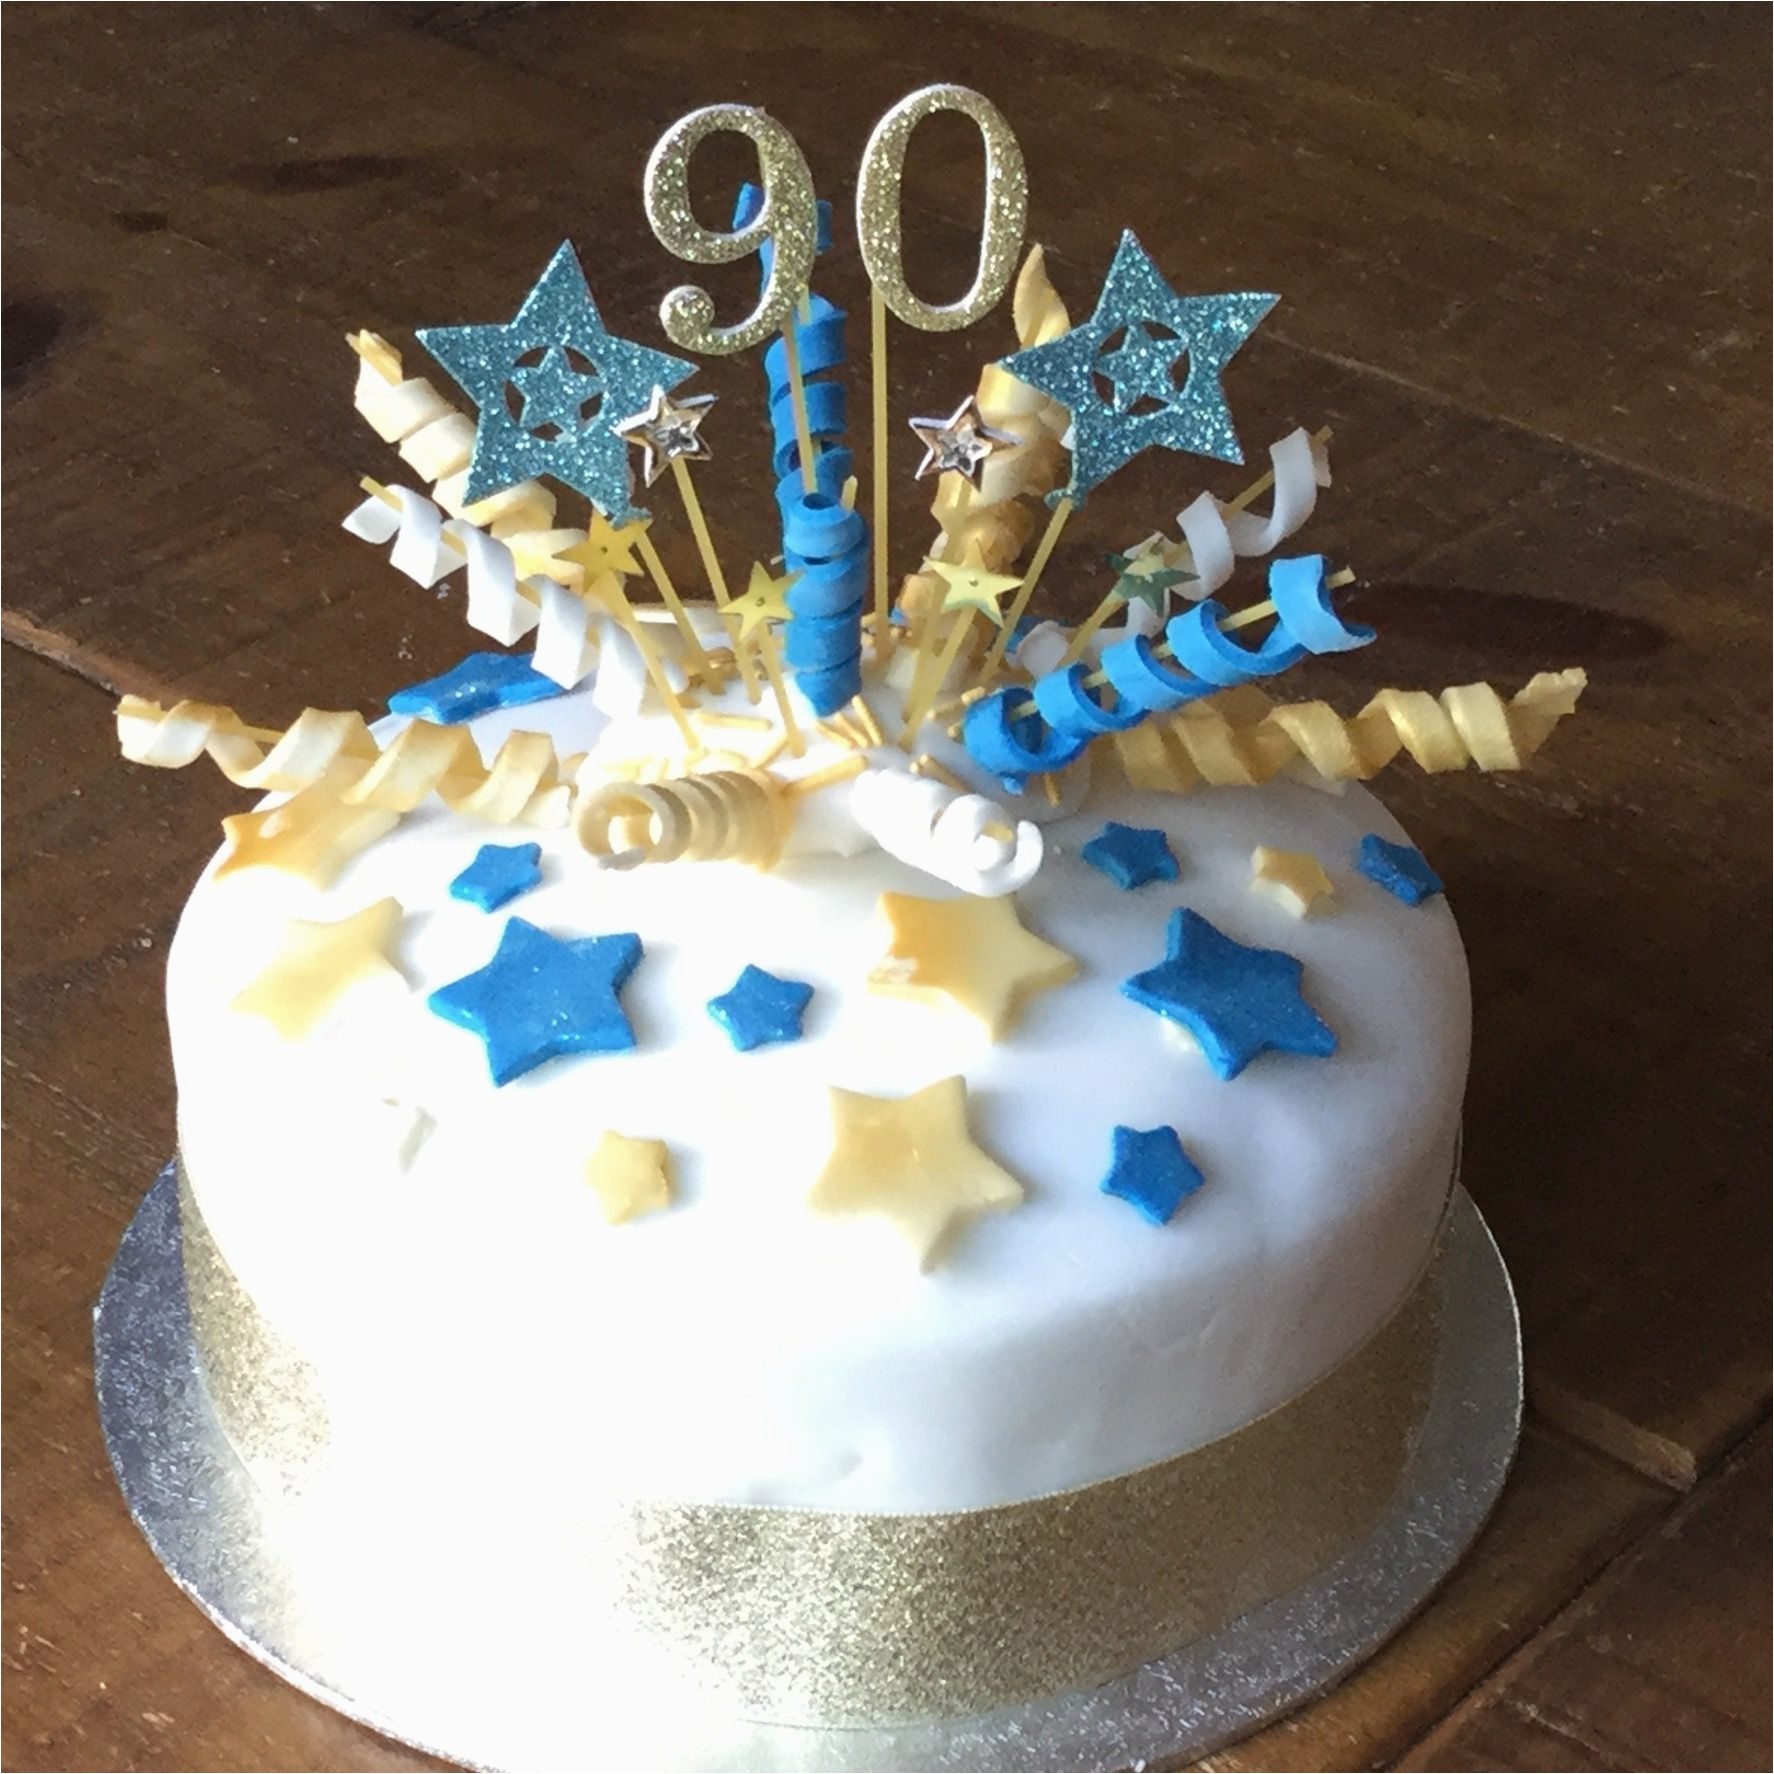 Cake Decorations For 90th Birthday Mom 39 S Pinterest